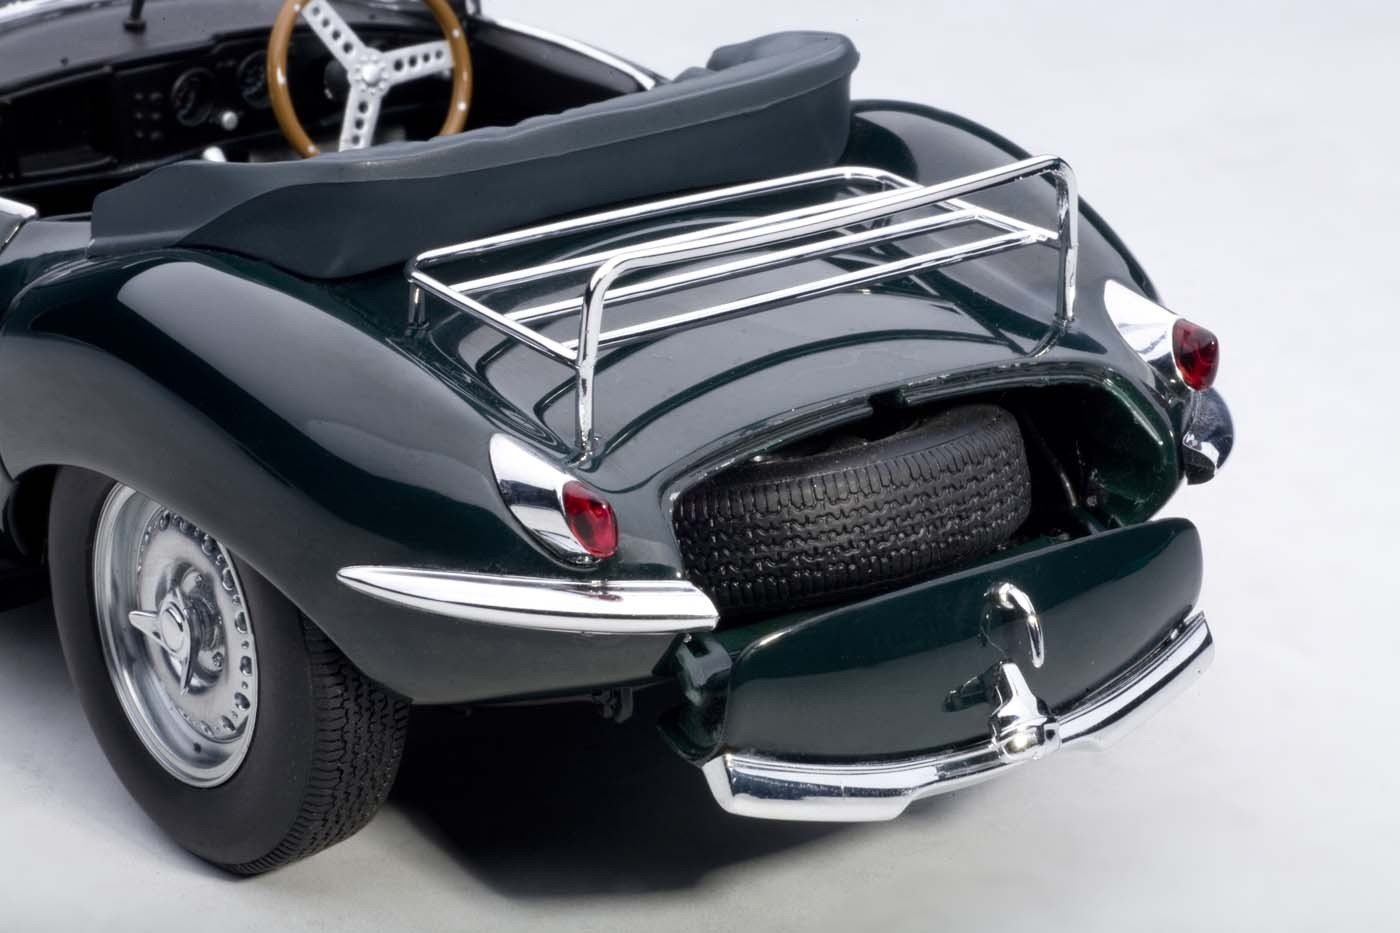 Jaguar Xk Ss 1956 Steve Mcqueen Private Collection 73526